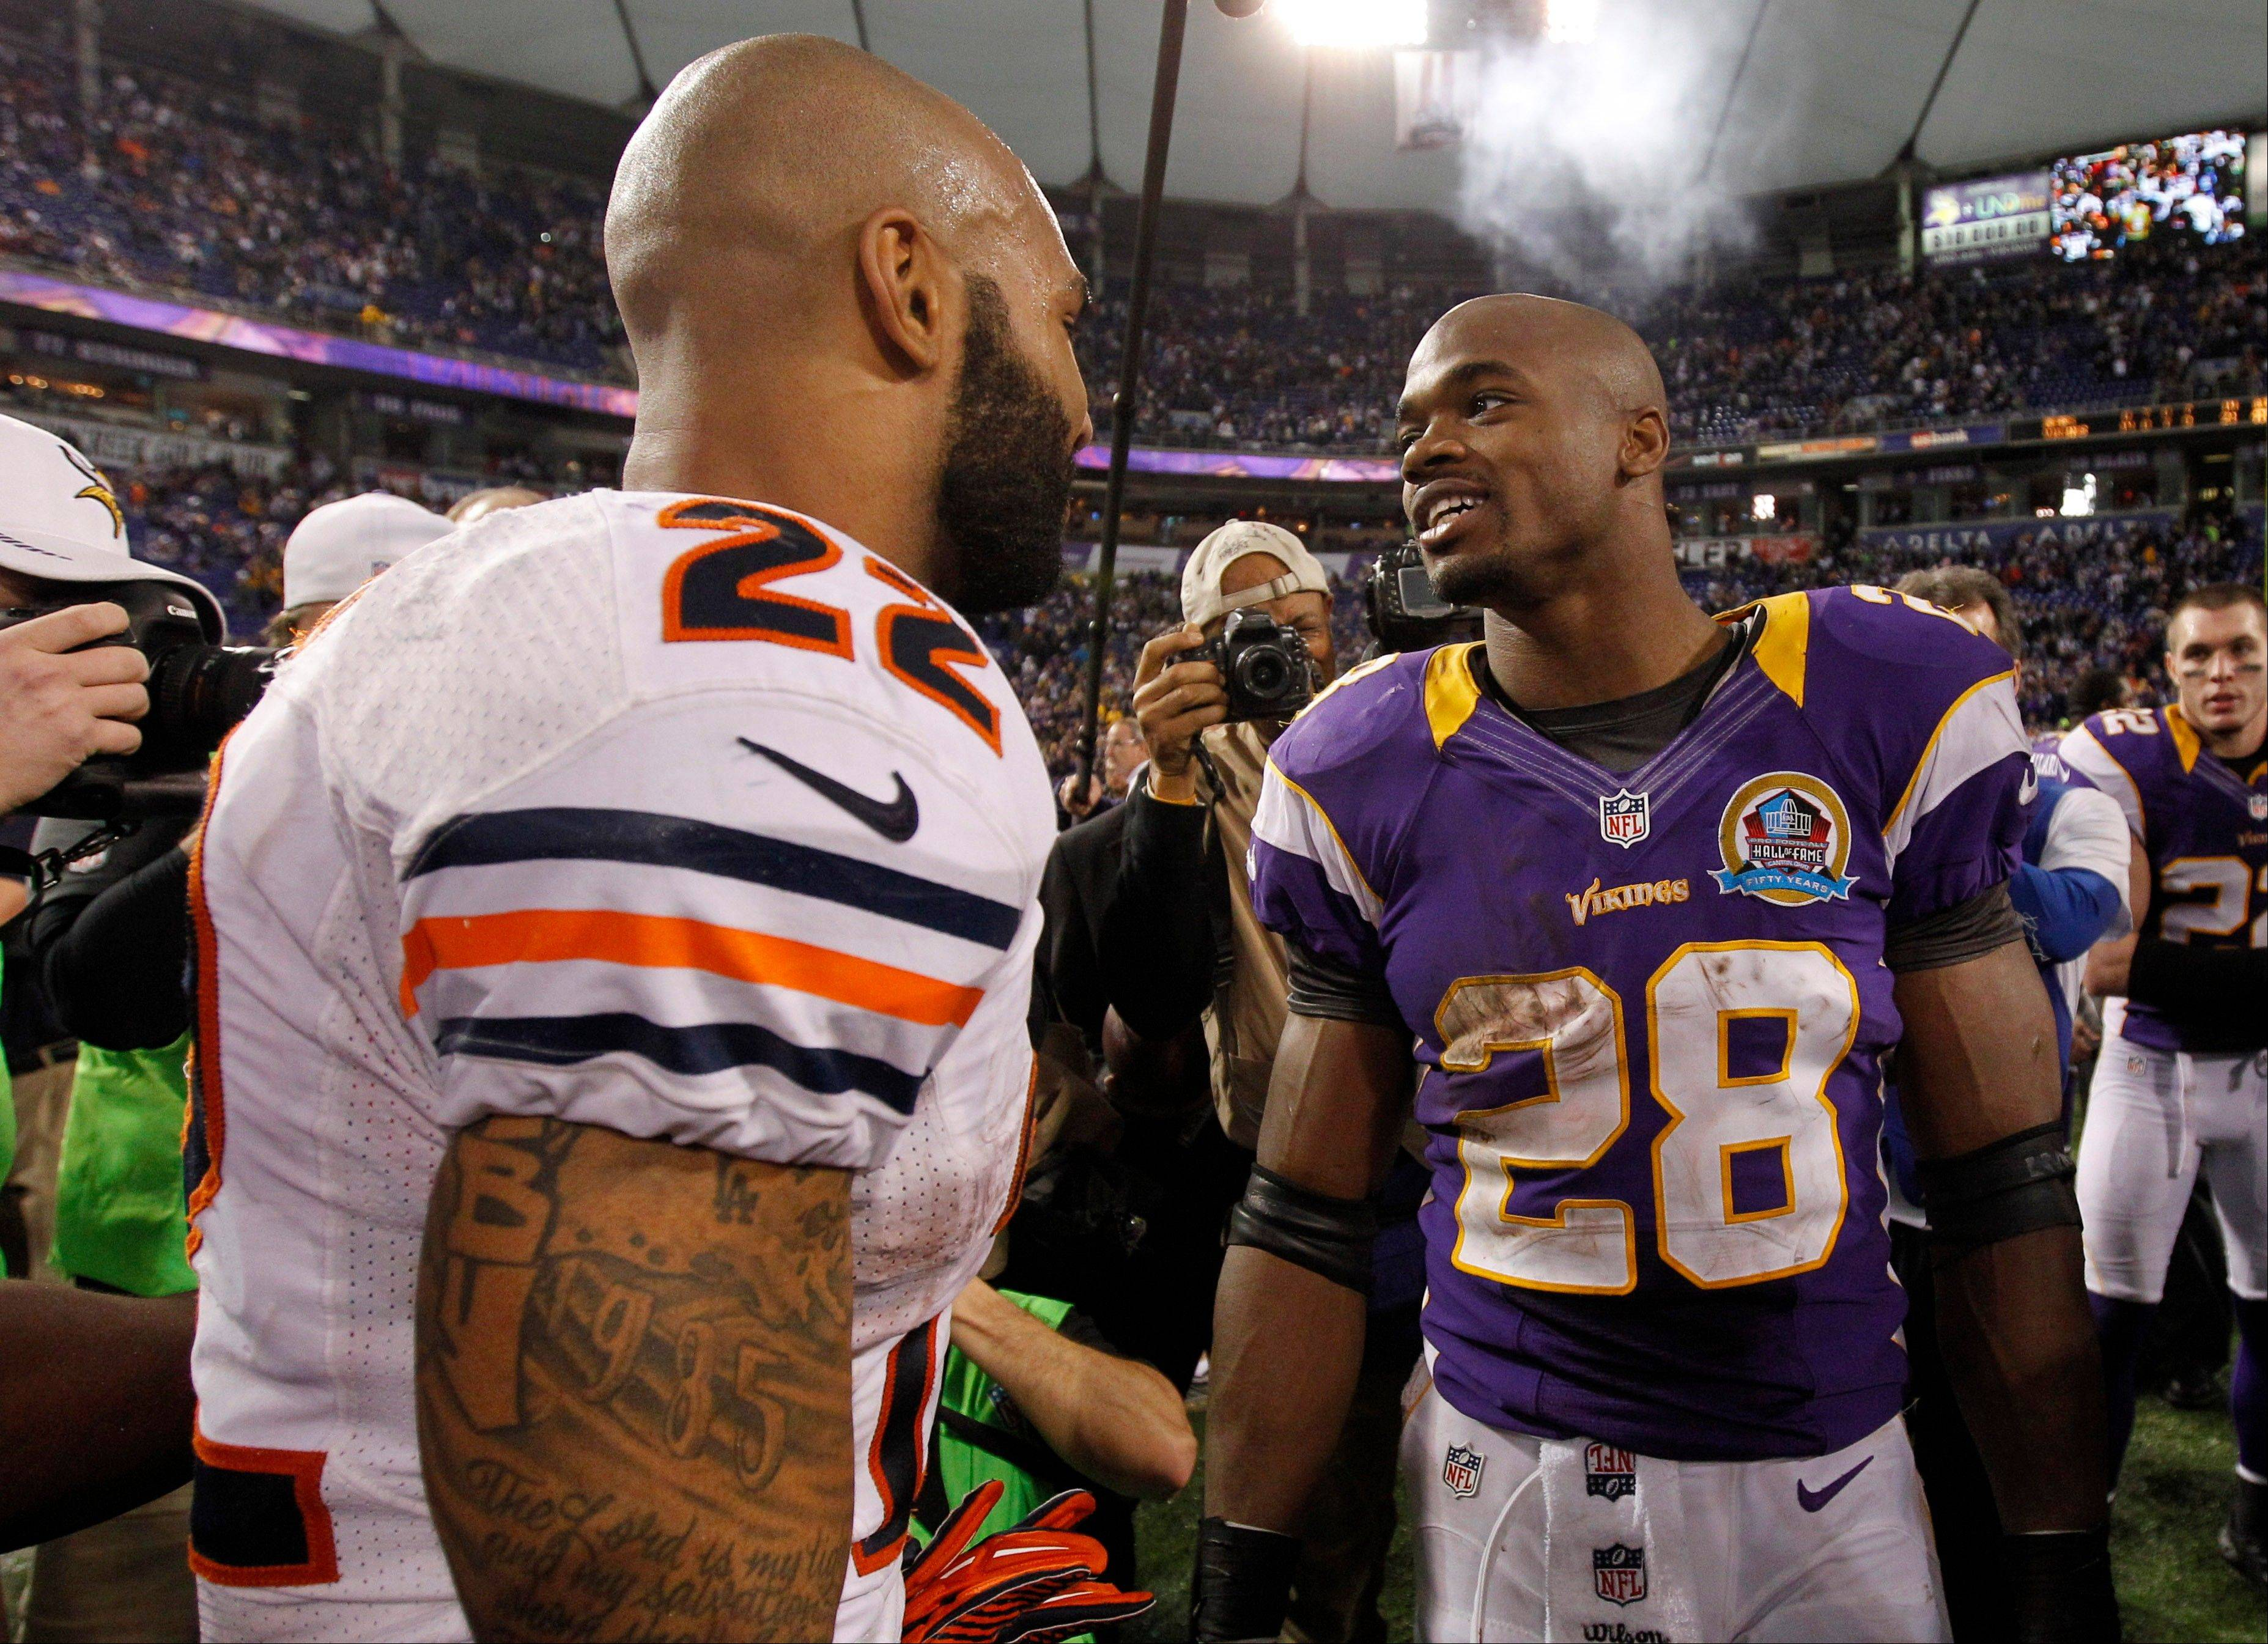 Minnesota Vikings running back Adrian Peterson, right, talks with Chicago Bears running back Matt Forte, left, after an NFL football game. The Vikings won 21-14.